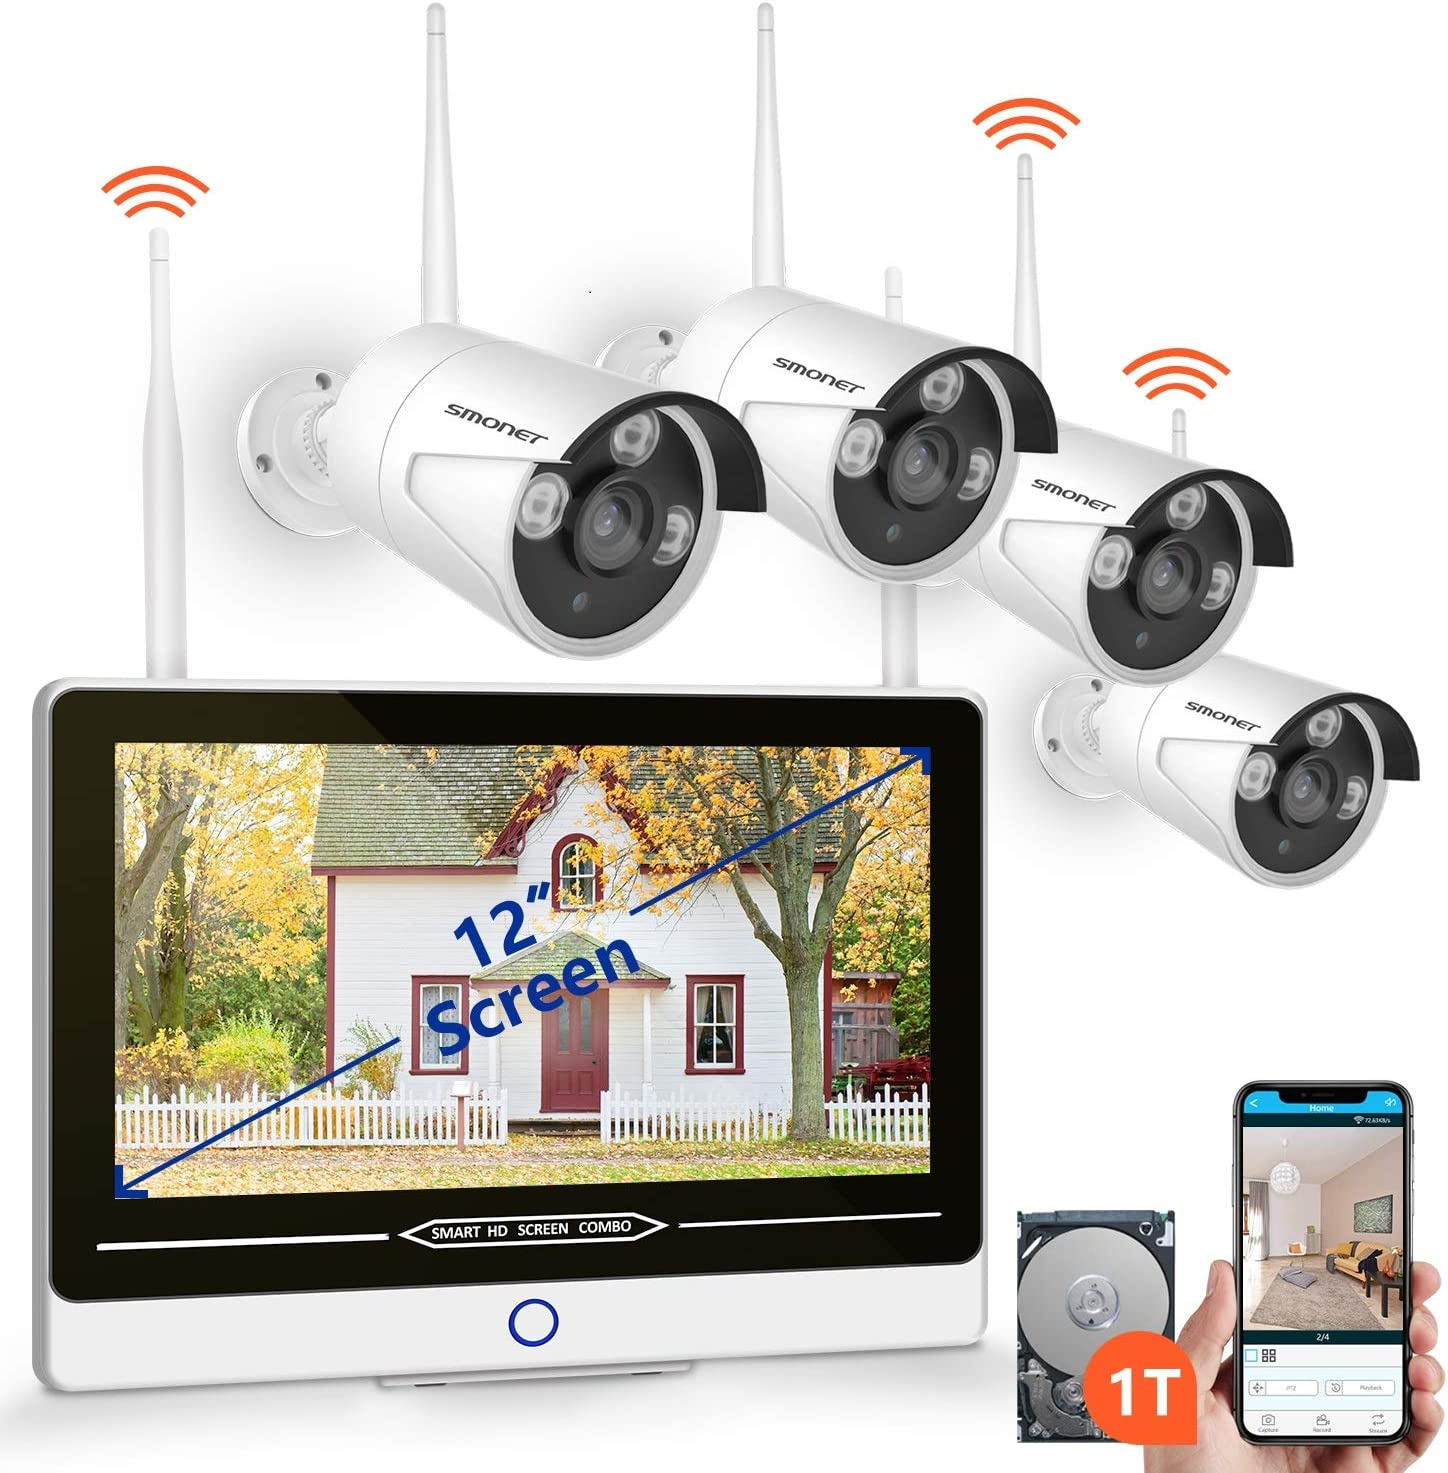 2019 NEW All in One with 12 Monitor Security Camera System Wireless,SMONET 8-Channel 1080P Home Security System 1TB Hard Drive ,4pcs 1.3MP Outdoor Wireless IP Cameras,P2P,Easy Remote View,Free APP